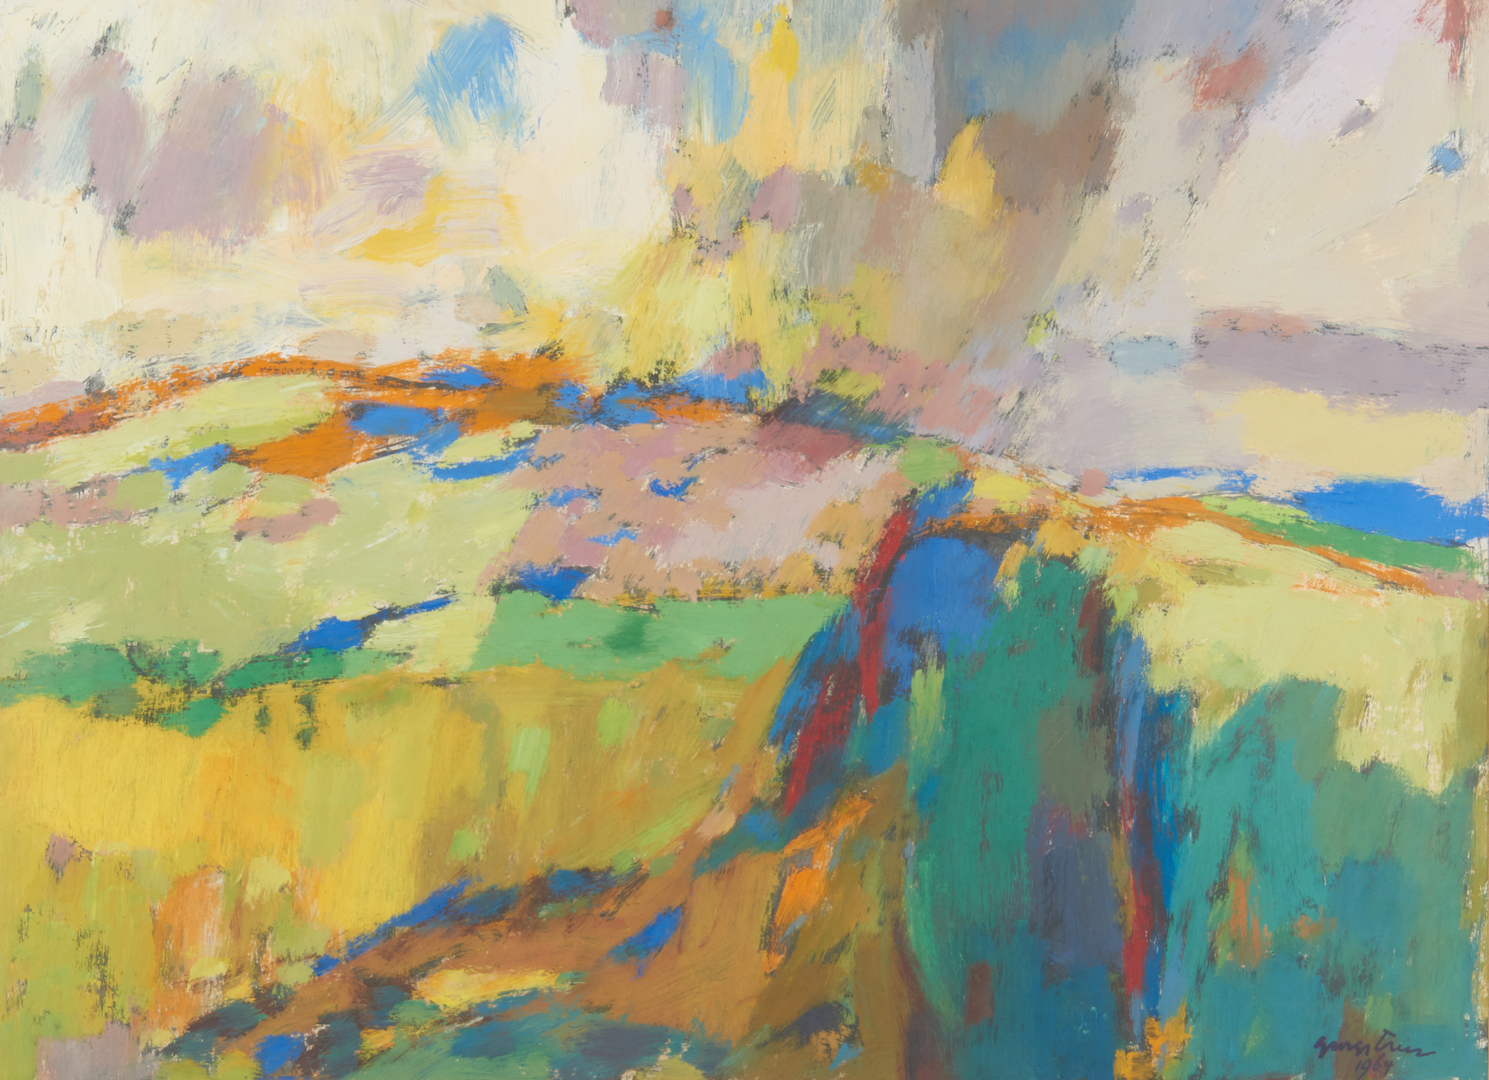 Lot 540: George Cress Oil on Paper, Expressionist Landscape